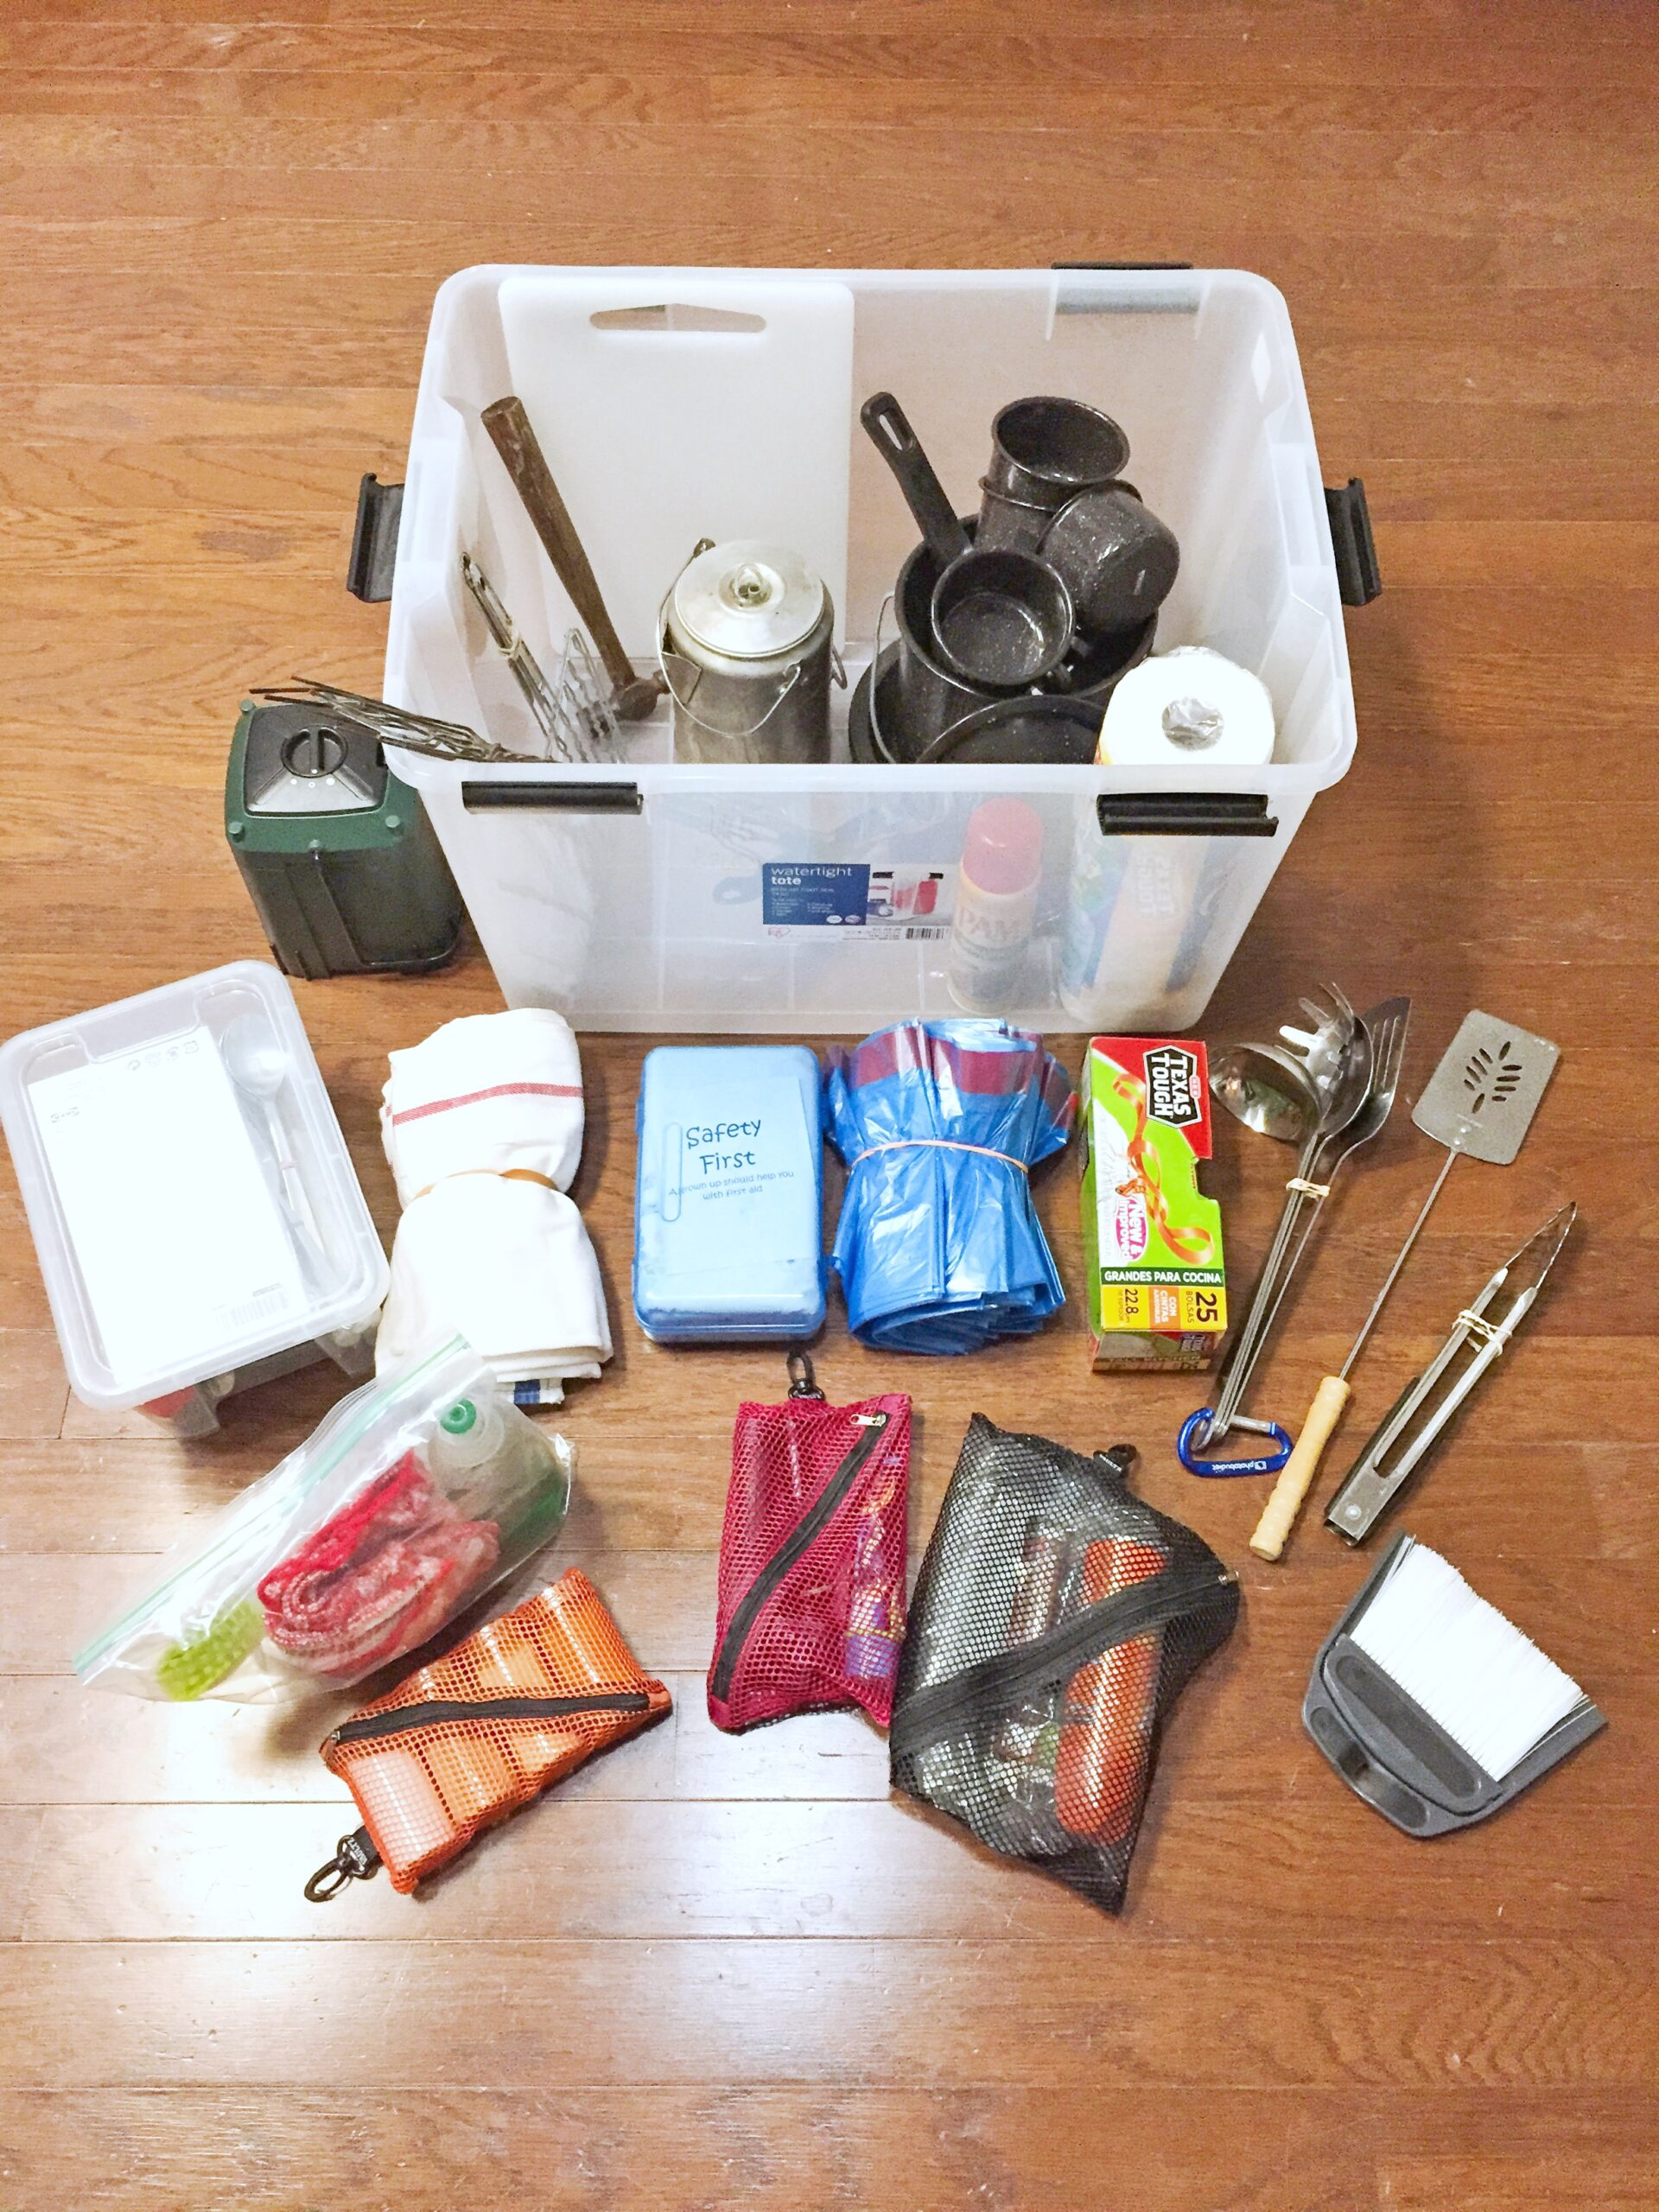 How to organize camping gear: Tips for putting together a camping supplies box   Fab Everyday